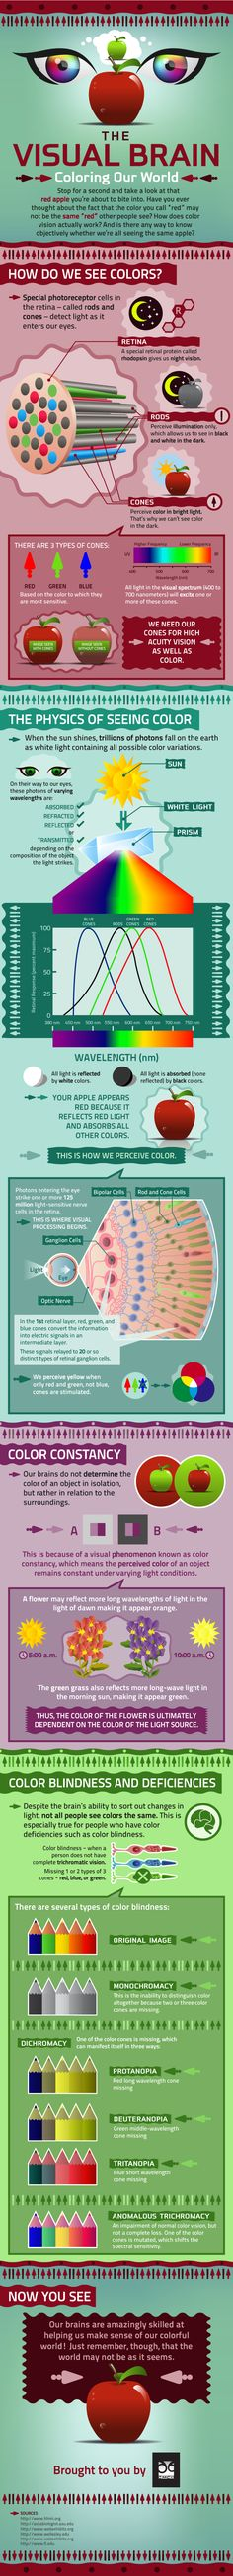 Ever wonder how we see color? Take a look at this info graphic which explains how our eyes and brain see color and the various conditions of color blindness.